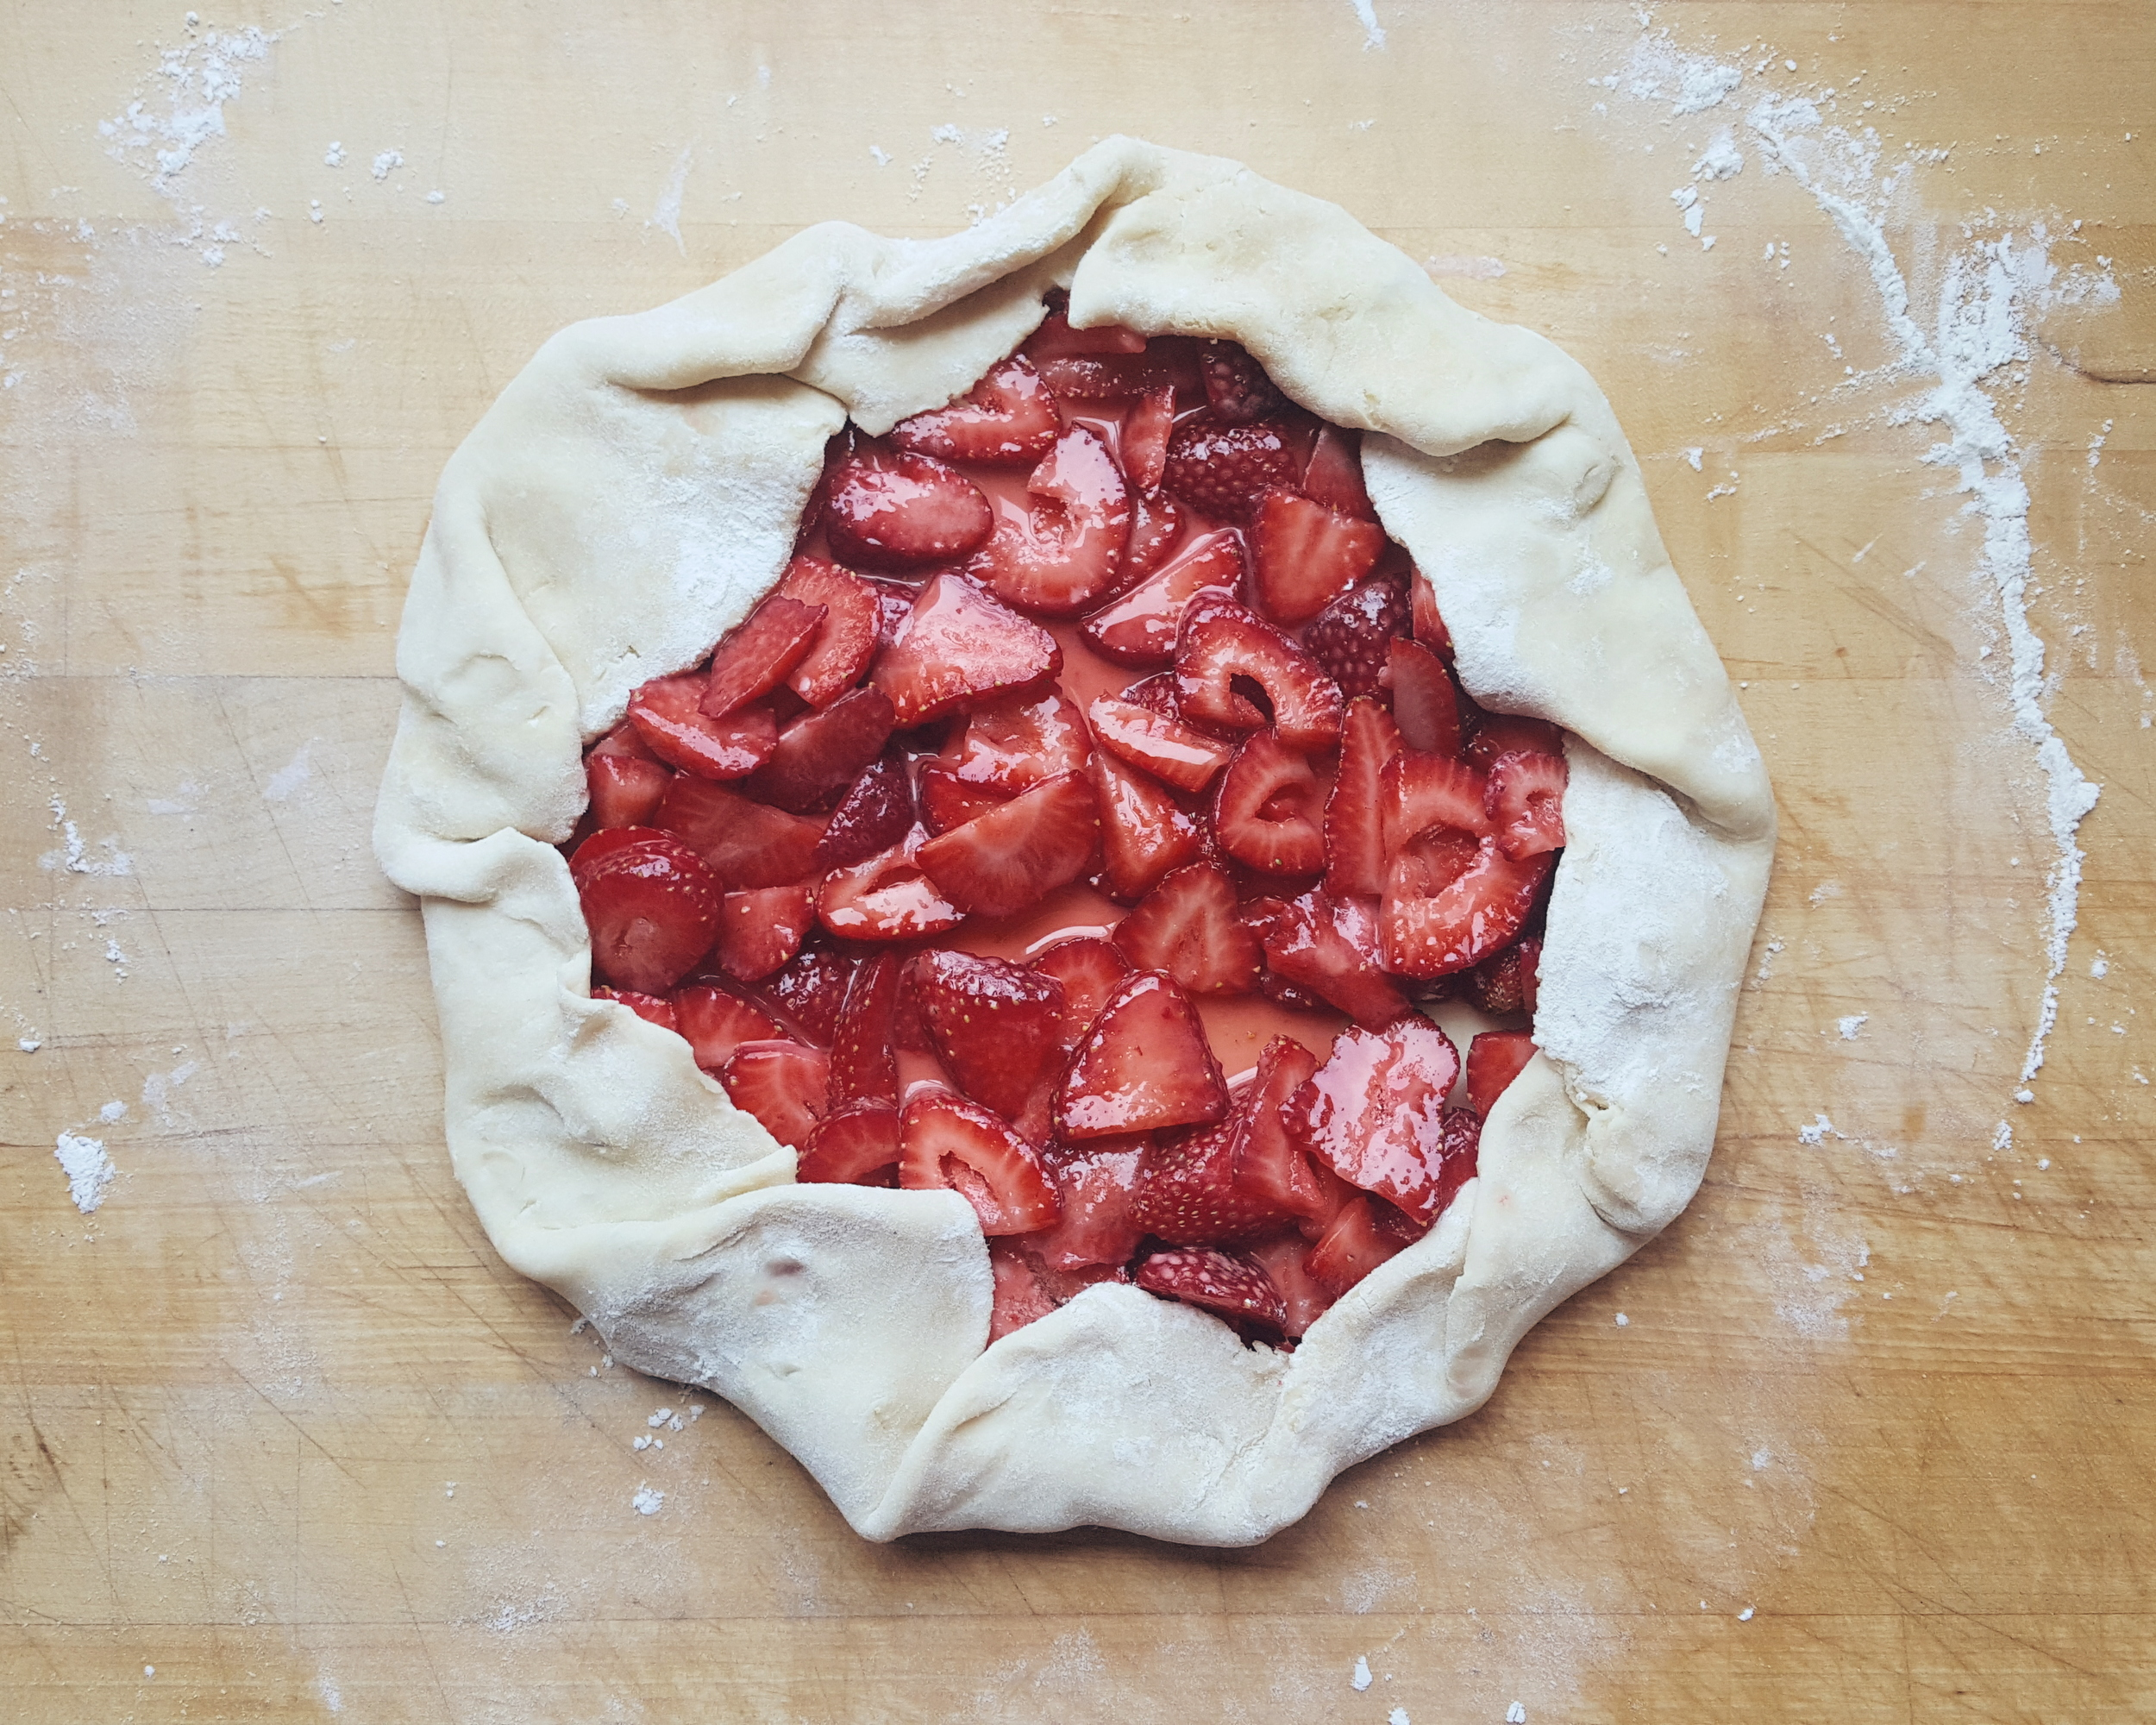 Strawberry Galette from Eat This Poem